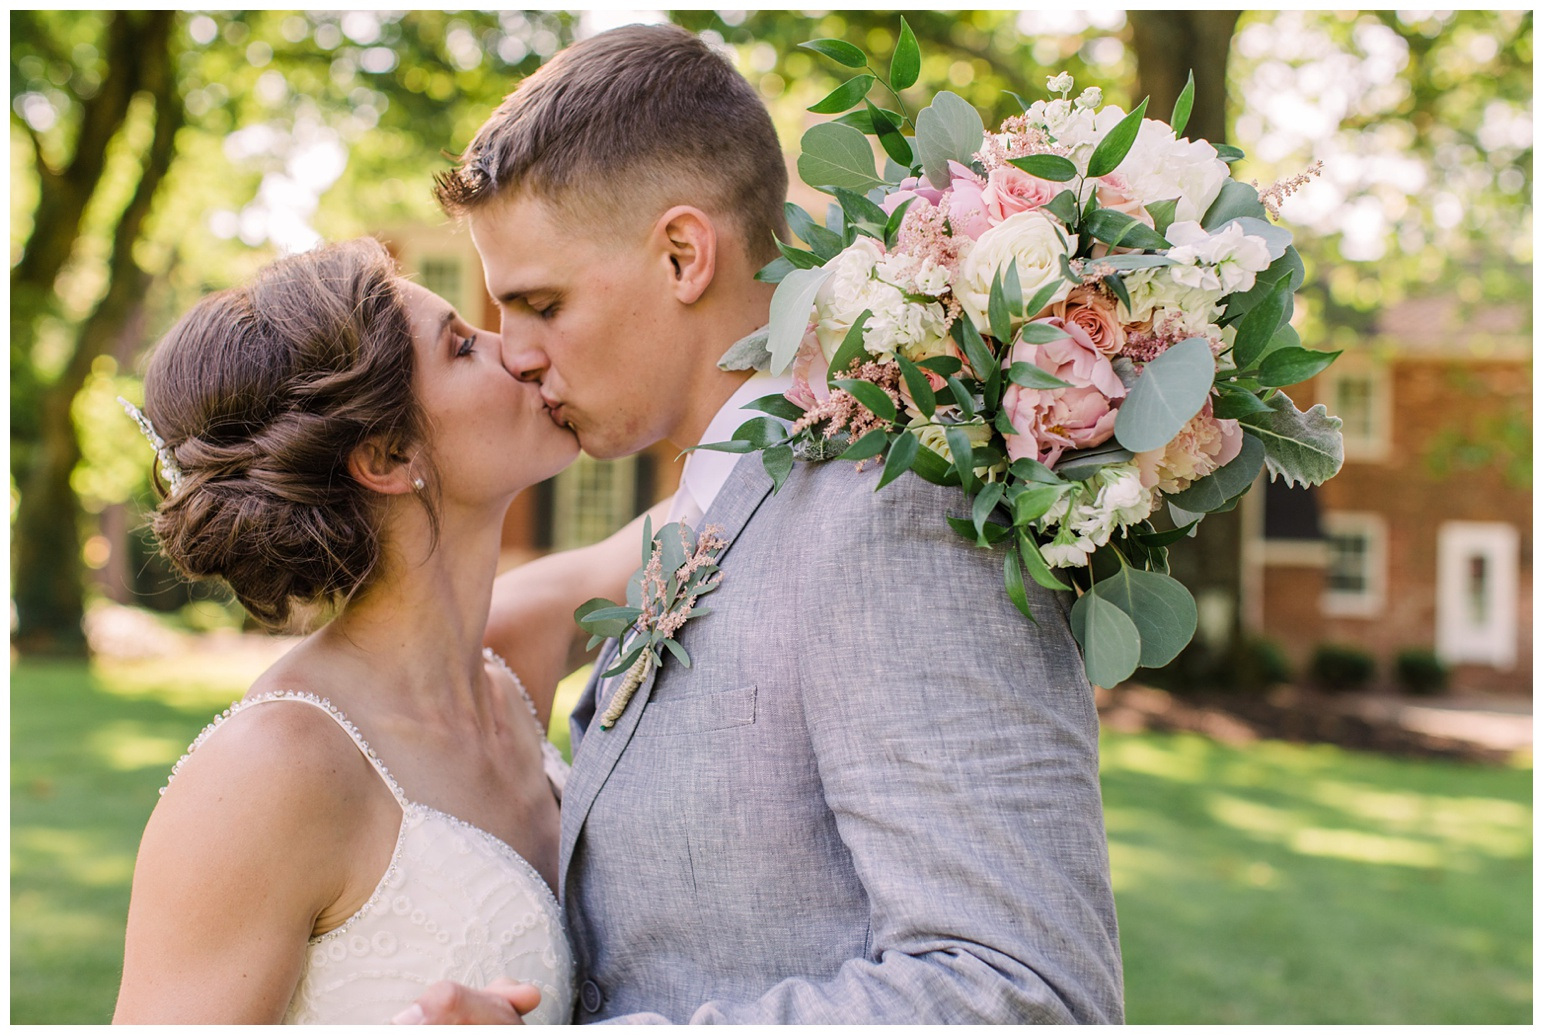 worsell manor wedding in the summer - warwick md - now featured on My Eastern Shore Wedding - coastal - sea - nautical - eastern shore - inspired wedding ideas and inspo - photo of bride and groom outdoors in front of brick manor style building - closeup - bridal bouquet - kissing